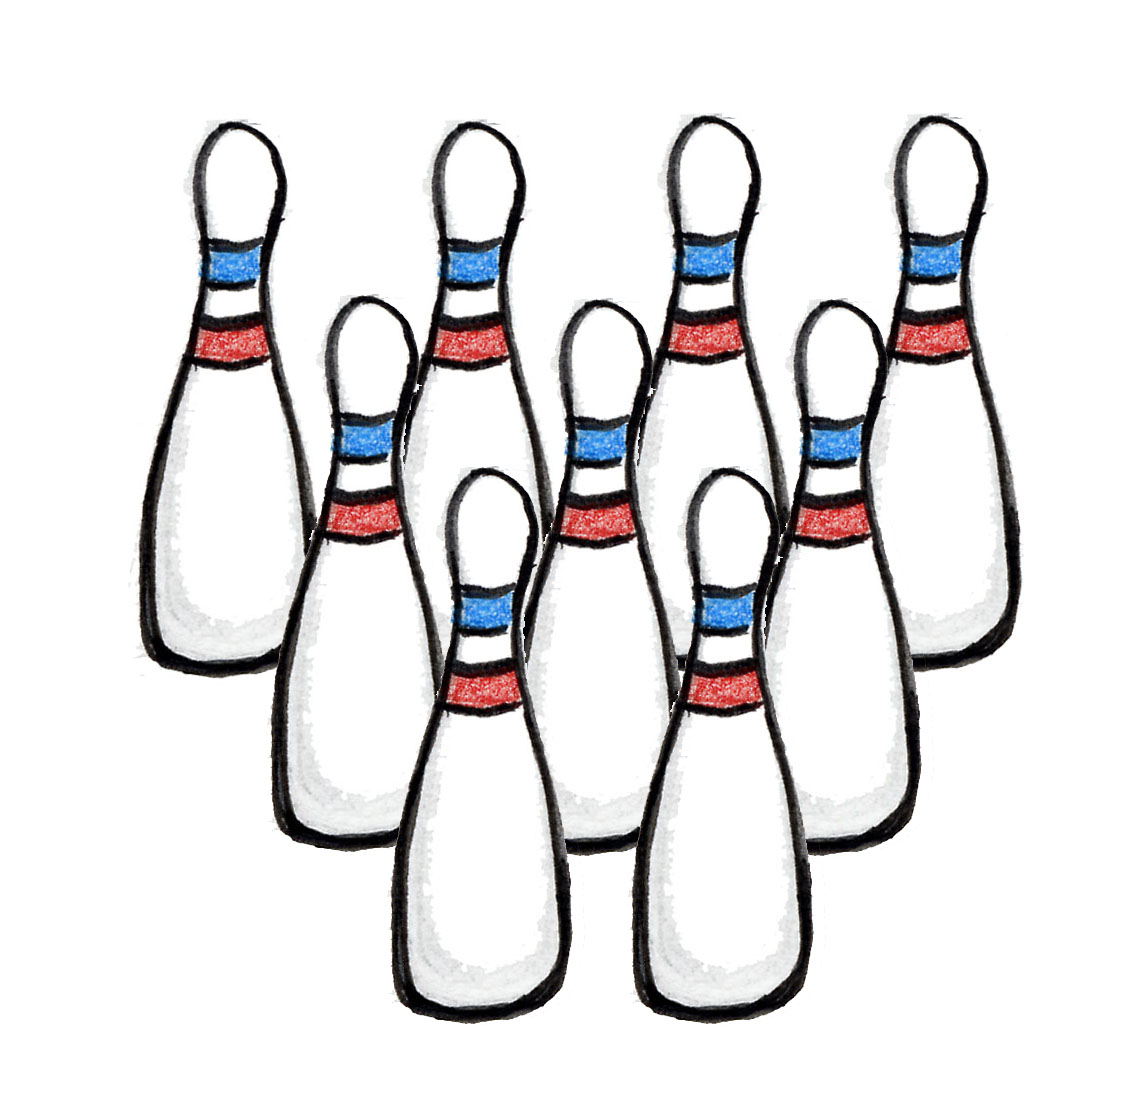 Pictures Of Bowling Pins.